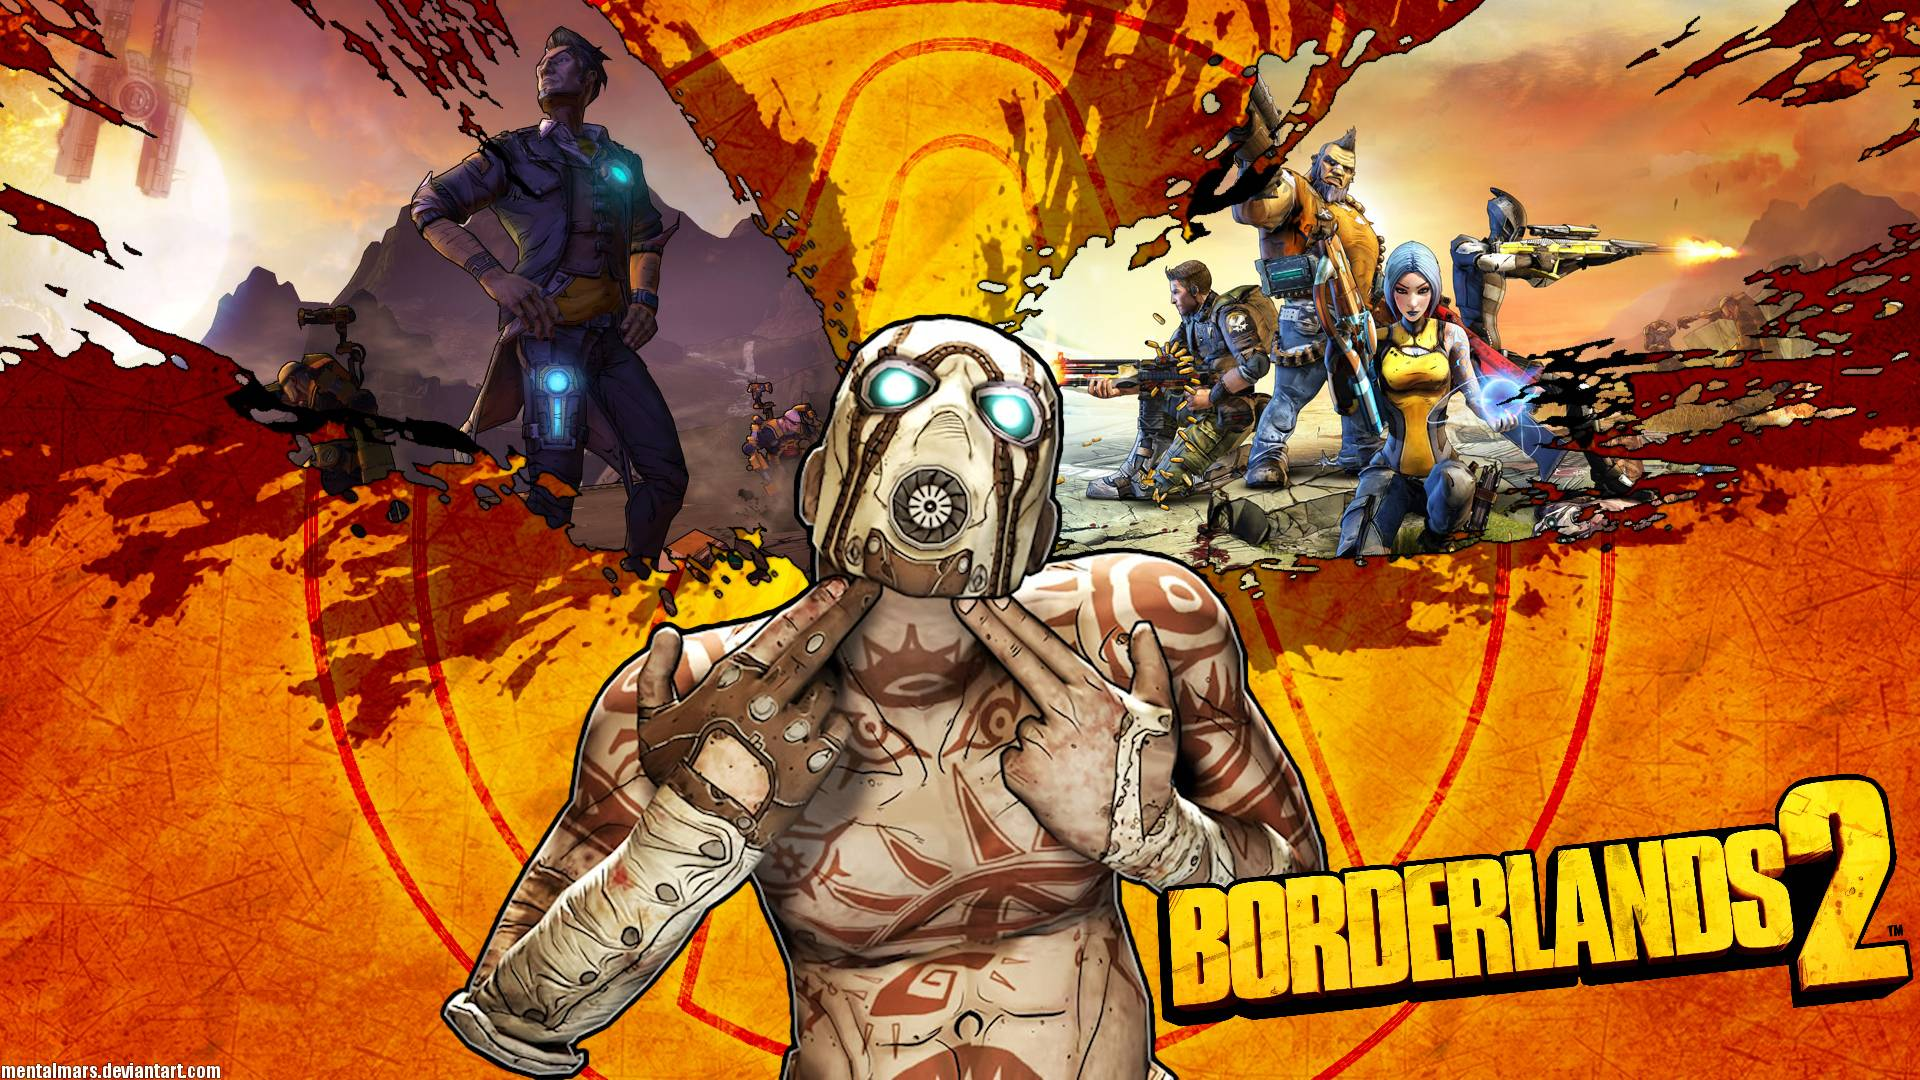 Top 14 Amazing Games That Are Similar To Borderlands